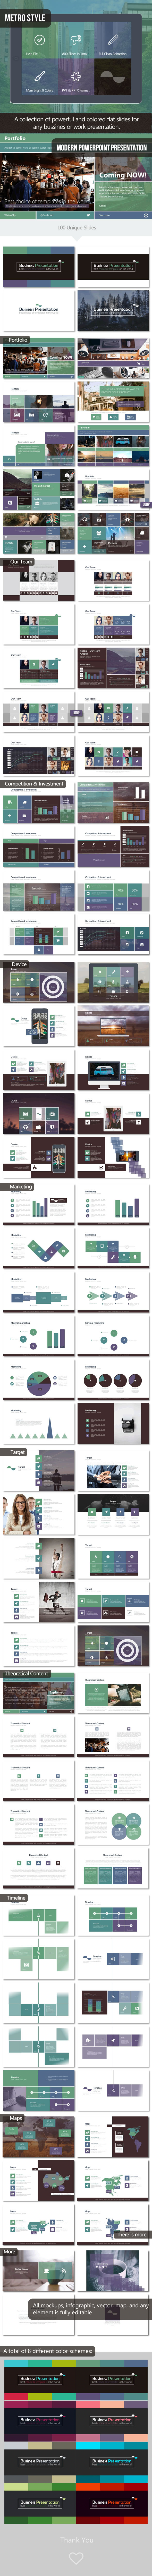 Business ppt metro style template design slides download http business ppt metro style template design slides download http toneelgroepblik Image collections